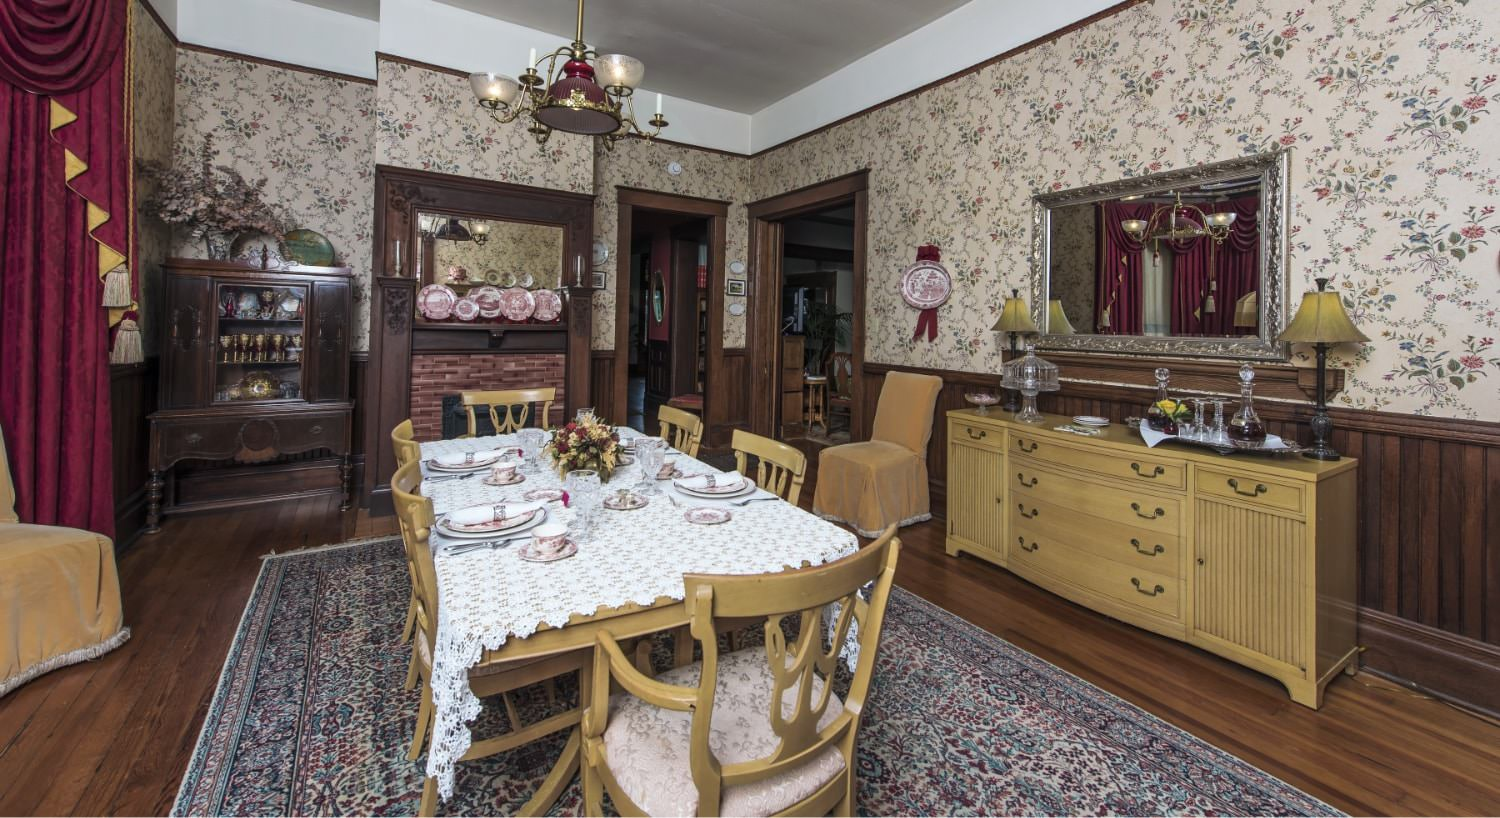 Dining room with light brown table, chairs, and buffet, dark brown hardwood floors, and floral wallpaper